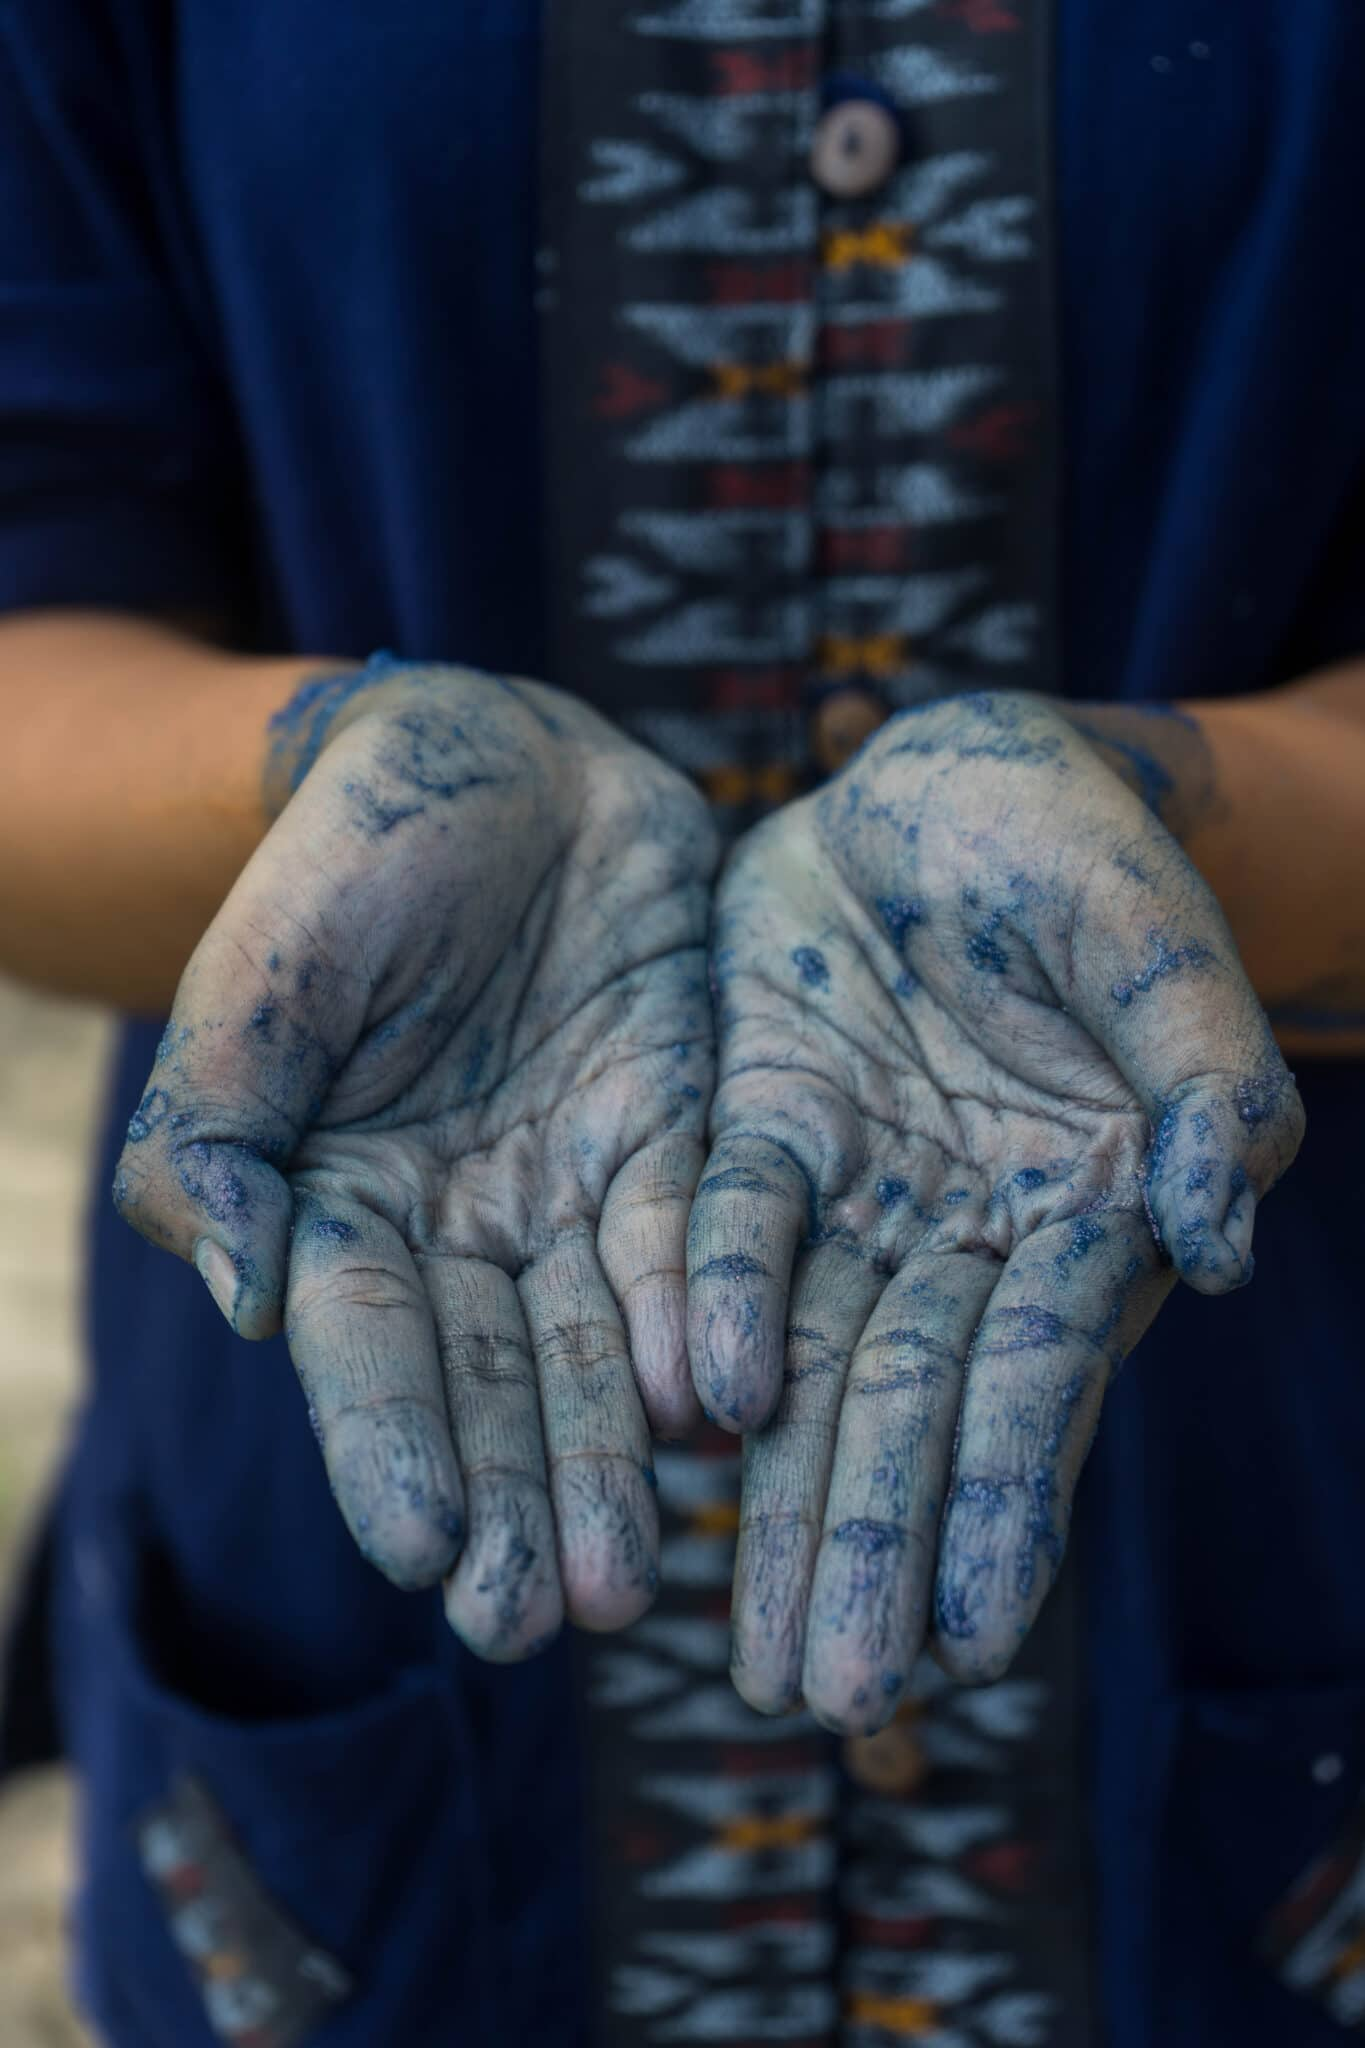 A fabric dyer's hands stained blue with natural dyes.